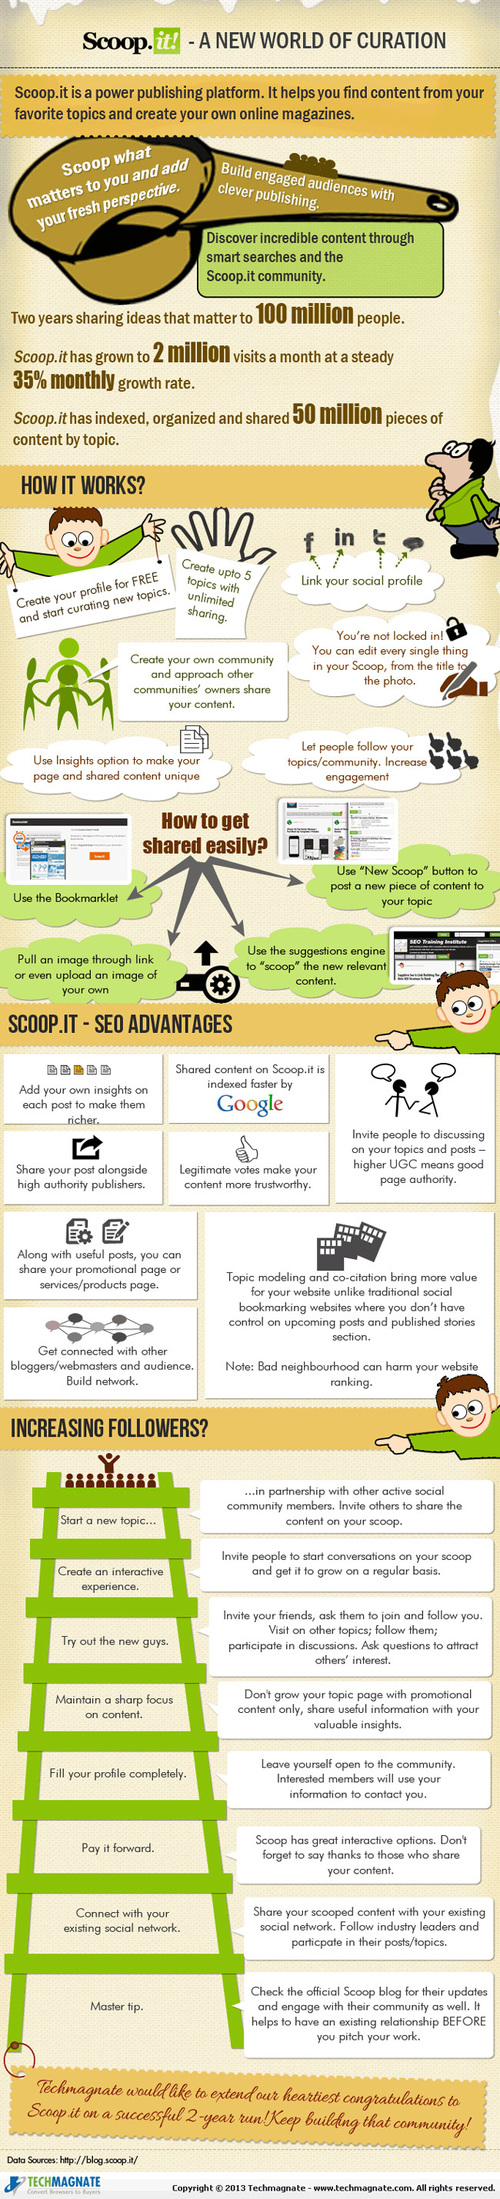 Scoop.It for SEO – A New World of Curation [Infographic]